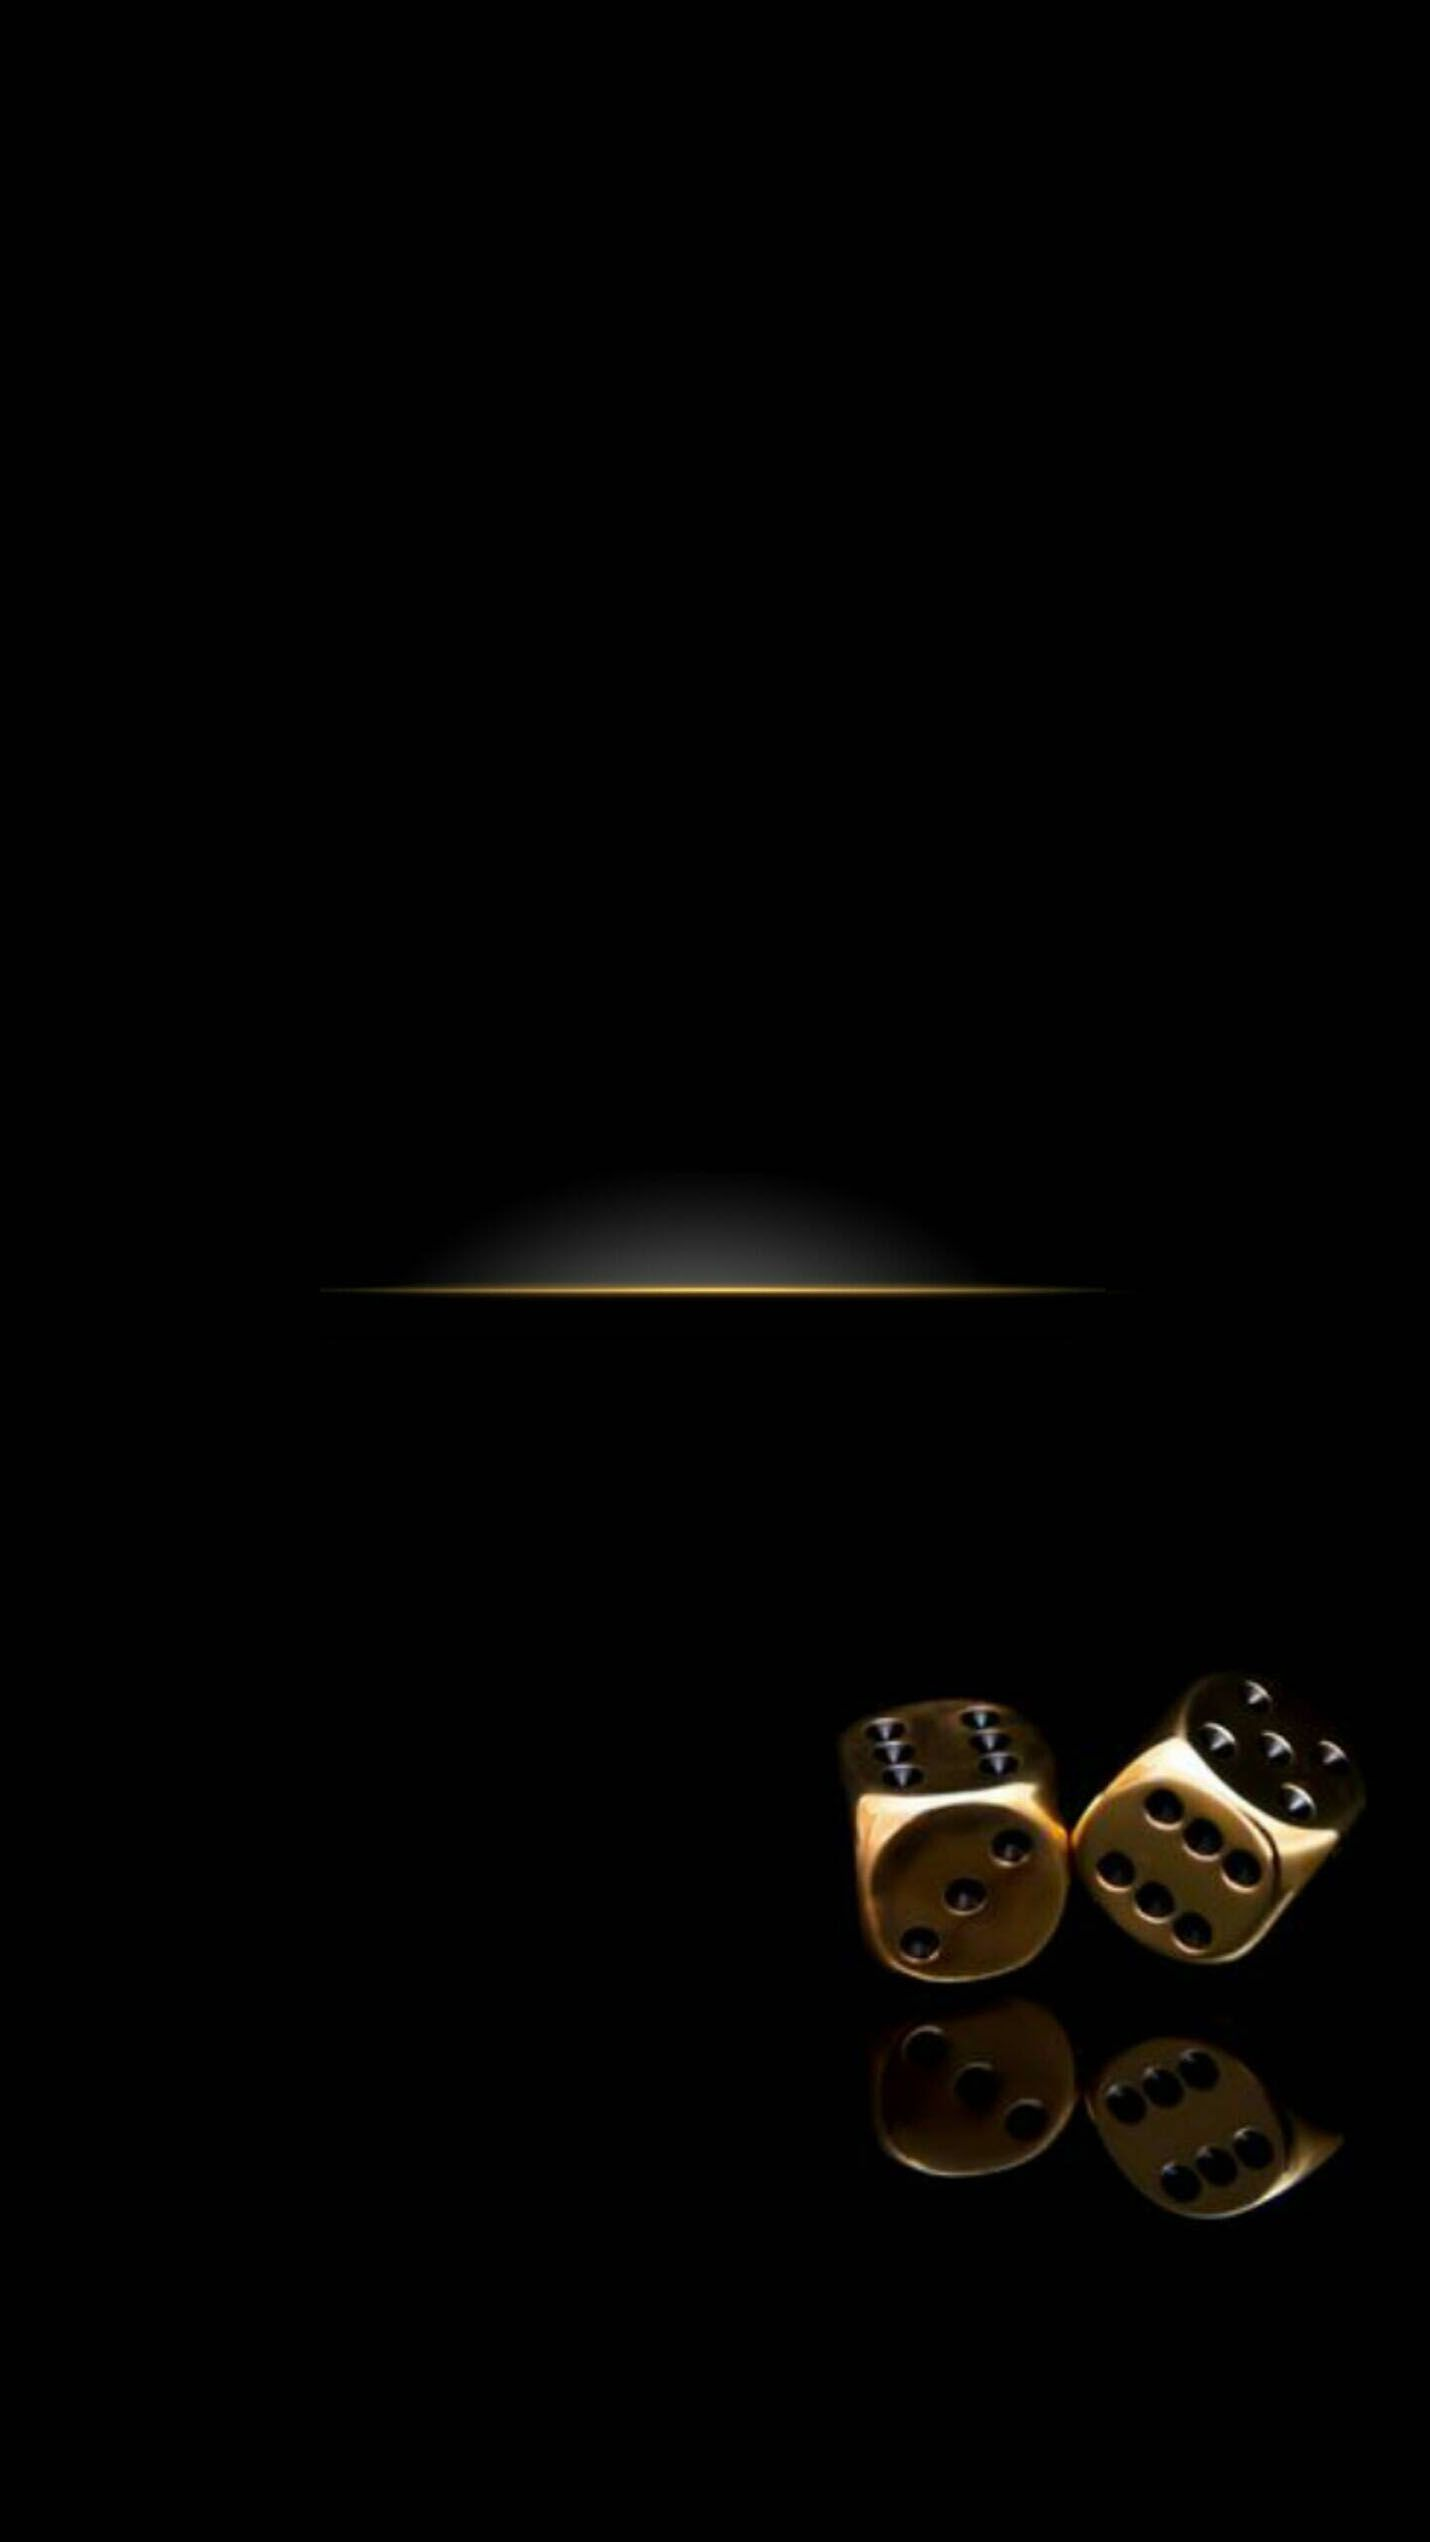 Gold Dice Hd Wallpapers Download Hd In Link Black Wallpaper Iphone Black Phone Background Black Wallpaper